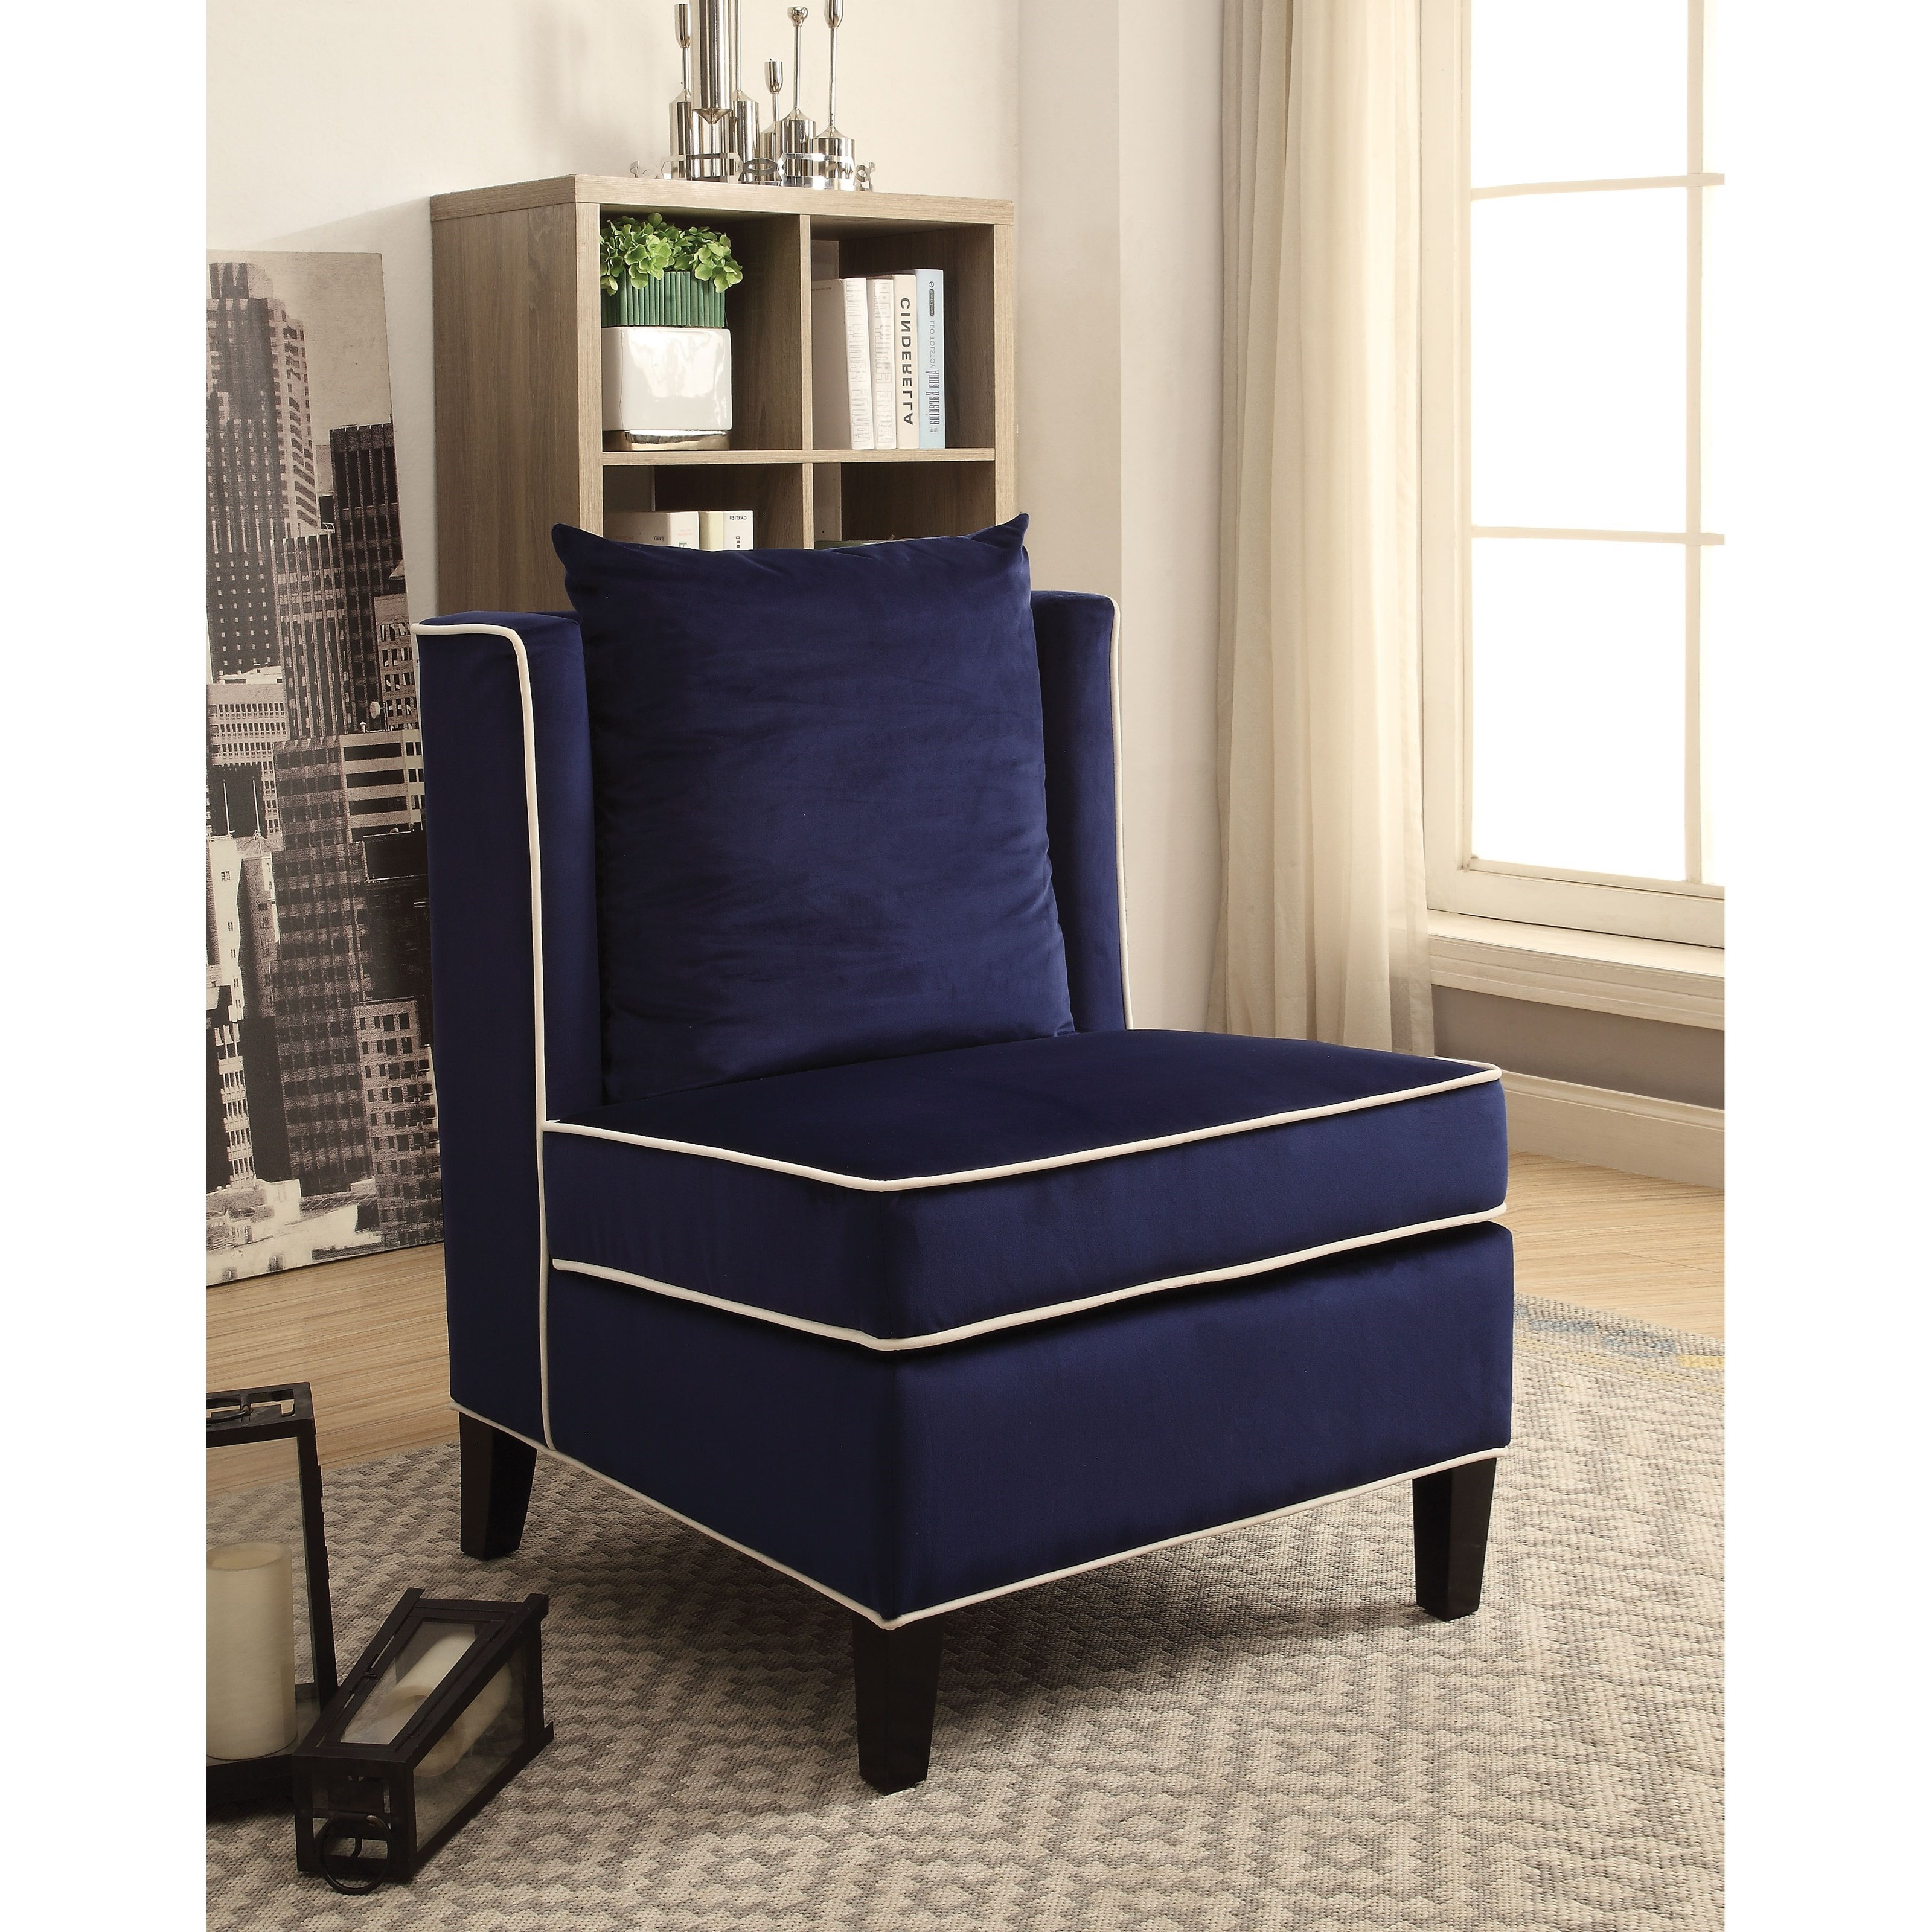 Ozella Upholstered Accent Chair by Acme Furniture at Carolina Direct